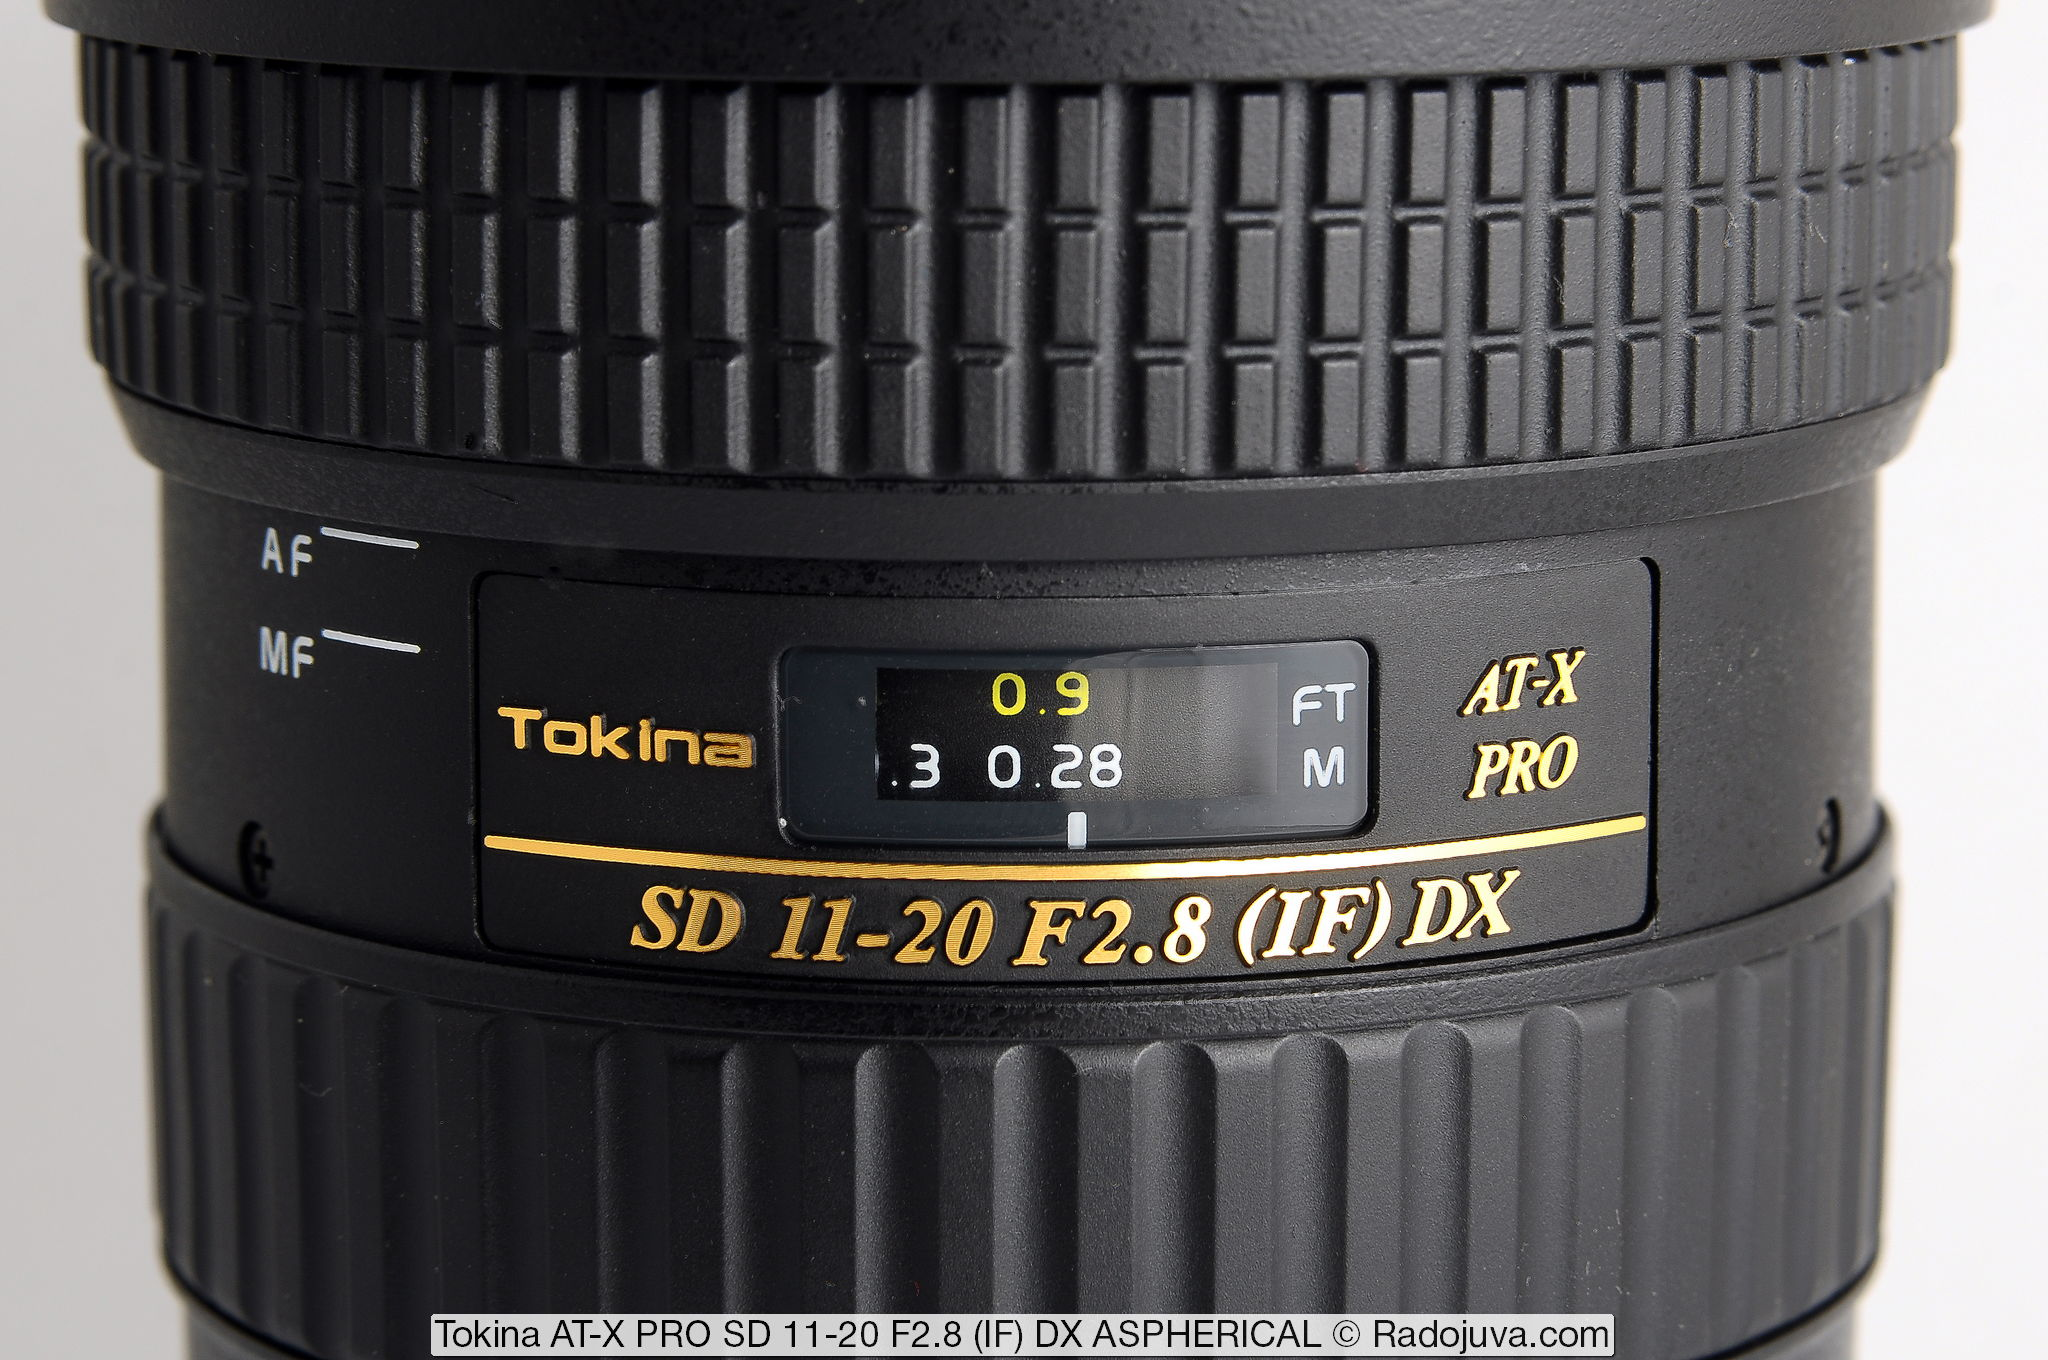 Tokina AT-X PRO SD 11-20 F2.8 (IF) DX ASPHERICAL